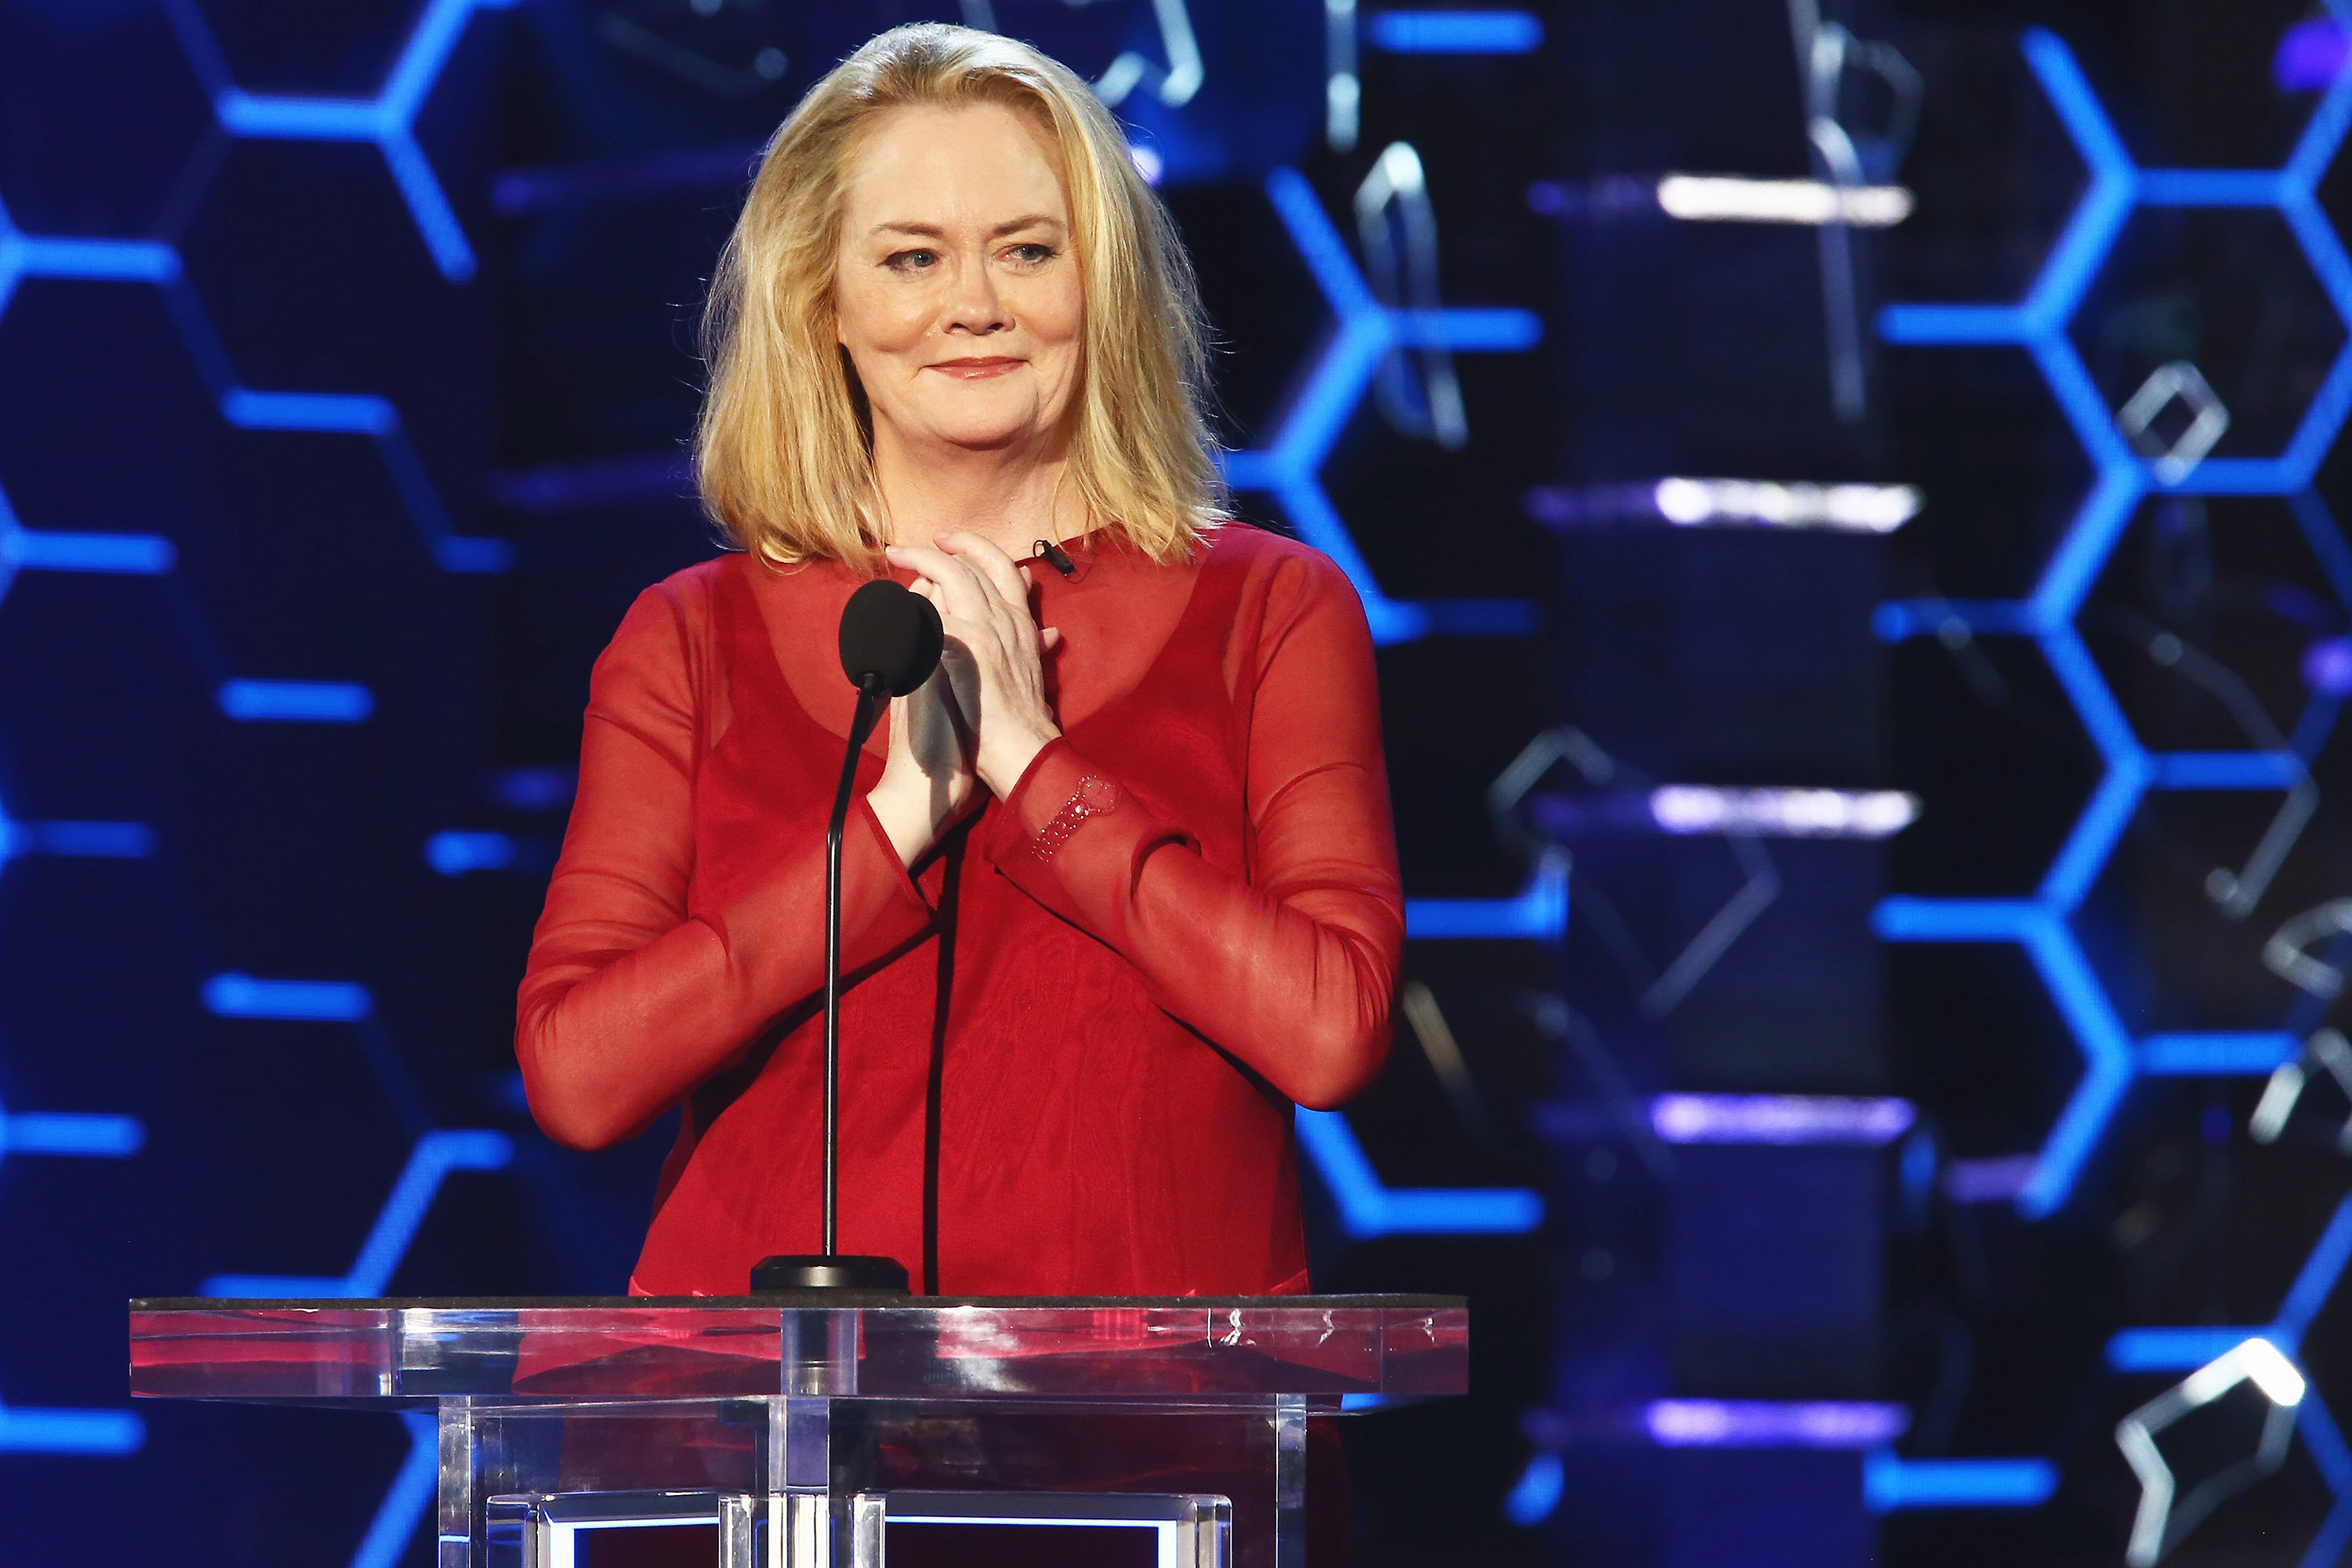 Cybill Shepherd attends the Comedy Central Roast Of Bruce Willis on July 14, 2018 | Photo: GettyImages